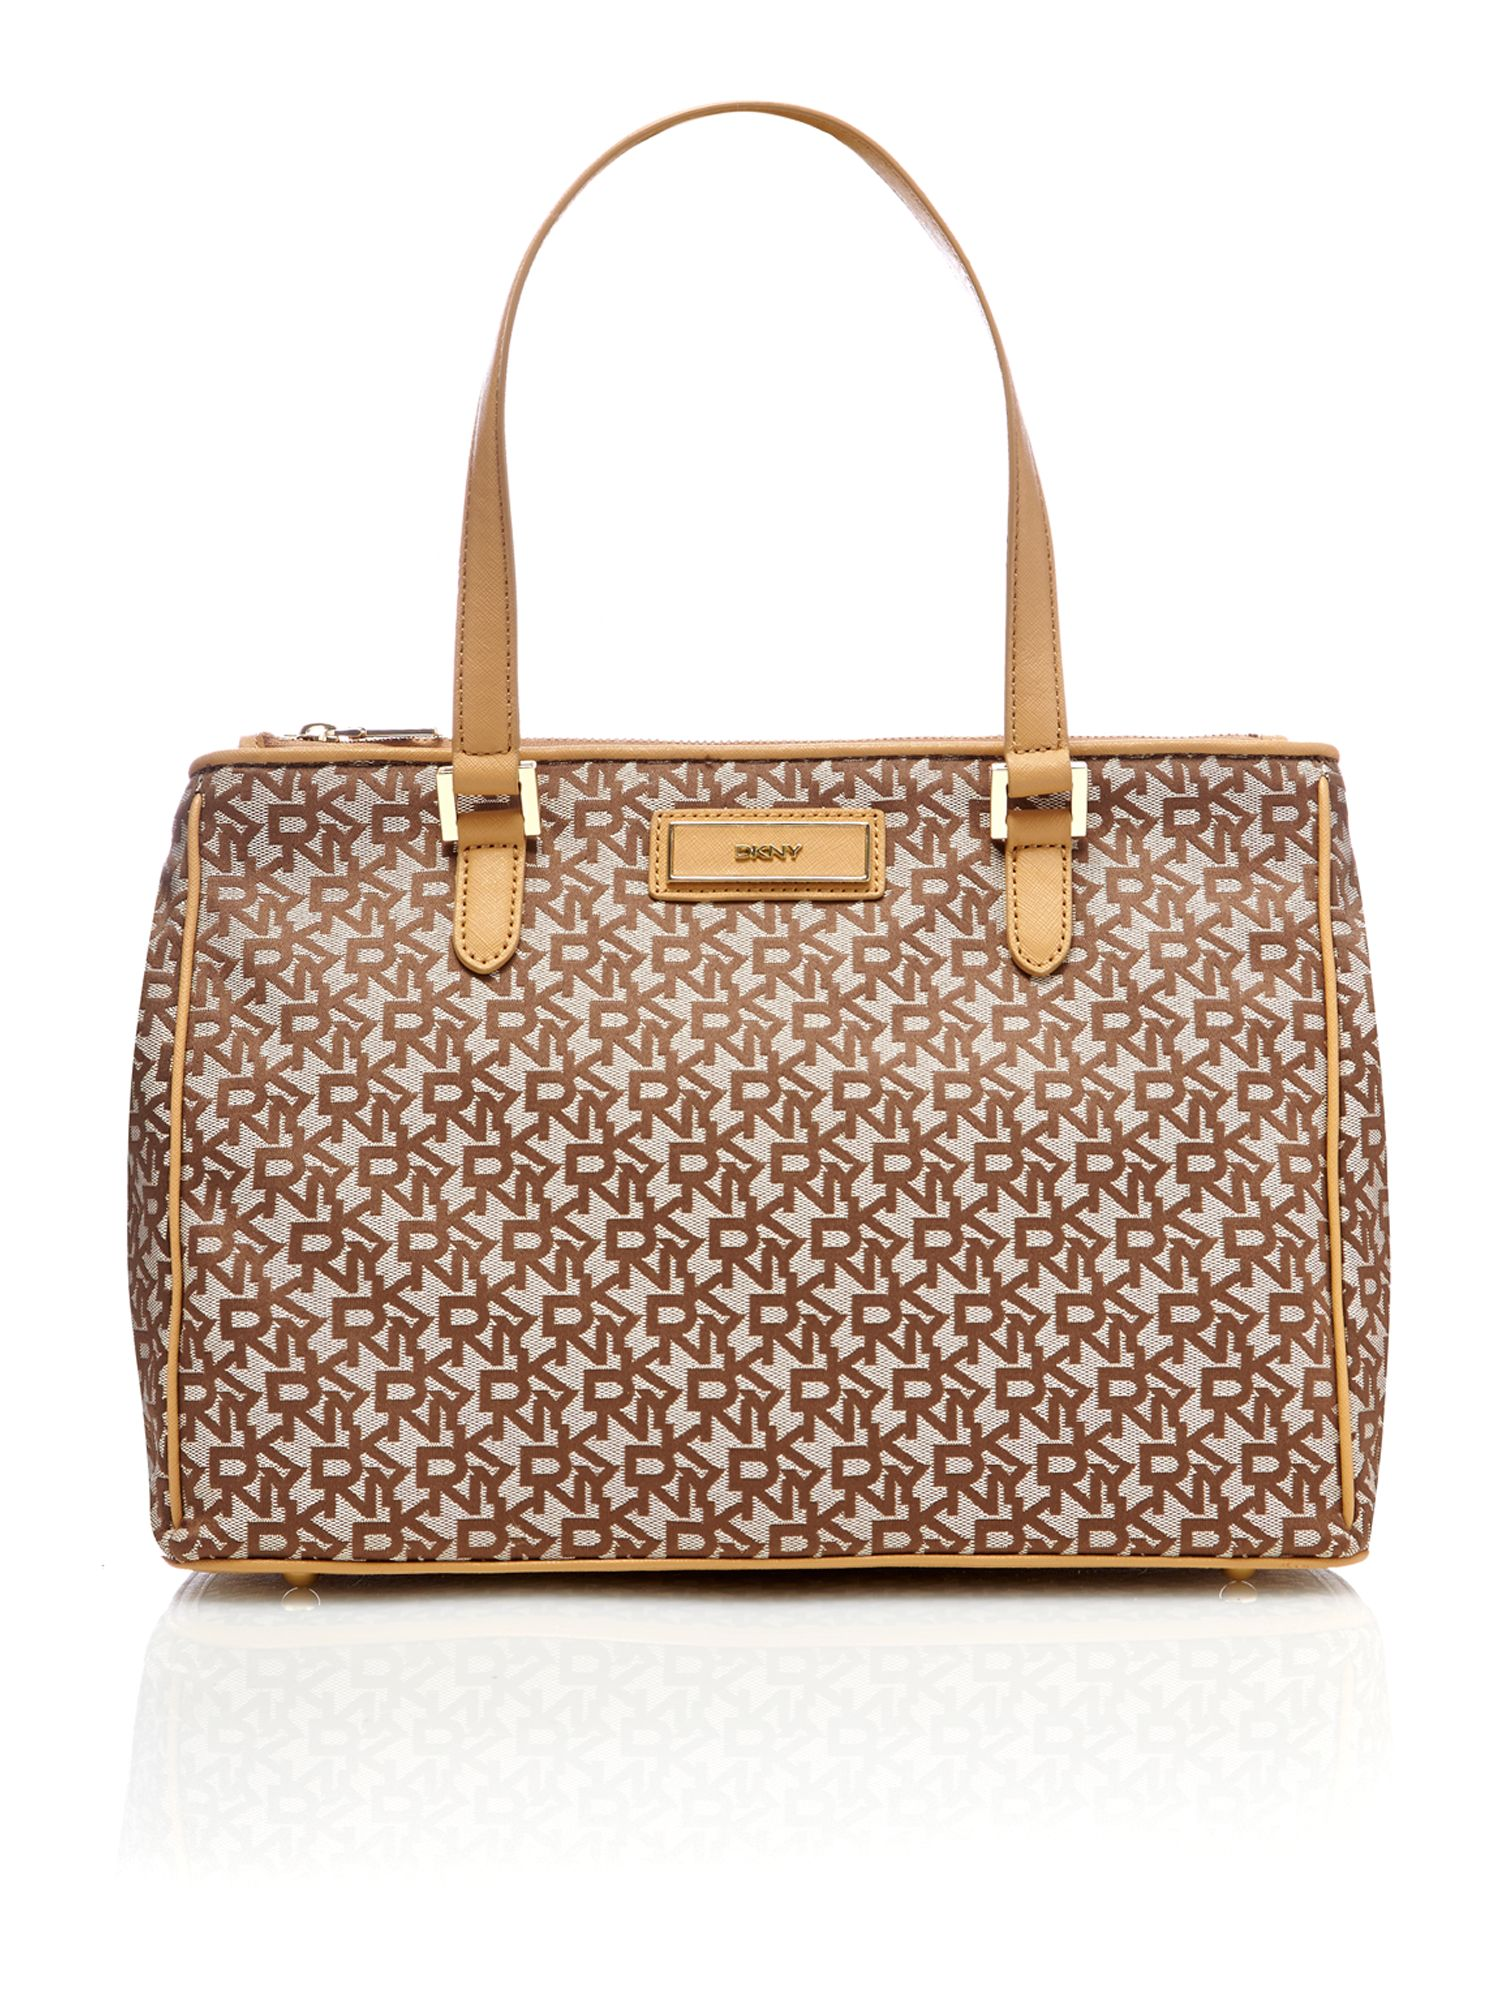 Saffiano tan large tote bag